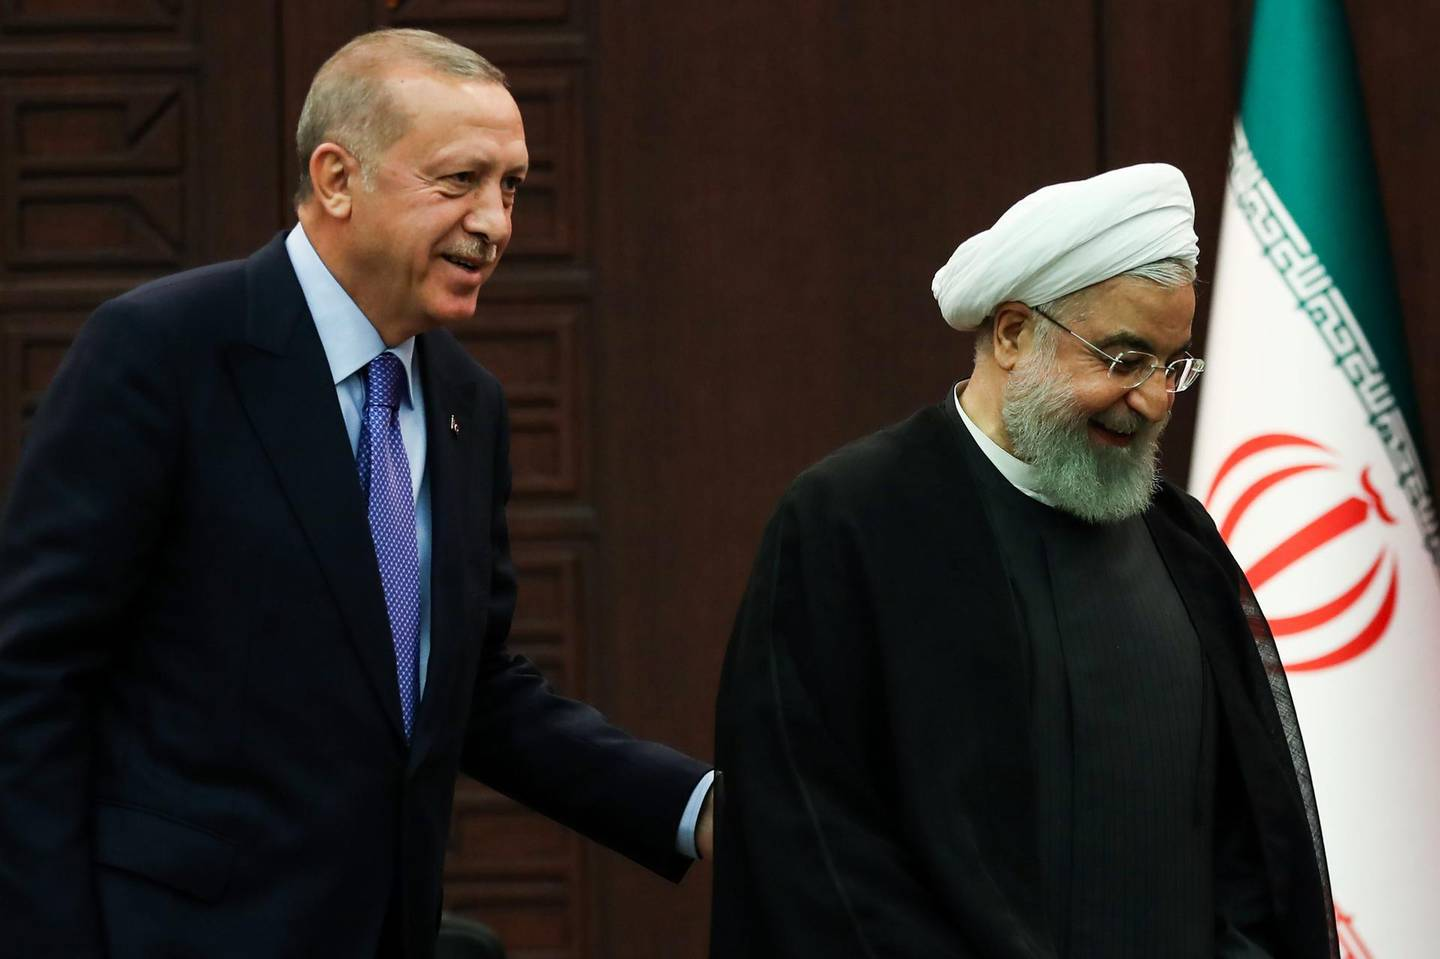 Turkish President Recep Tayyip Erdogan (L) and Iranian President Hassan Rouhani (R) leave after a press conference with Russian counterpart following a trilateral meeting on Syria, in Ankara on September 16, 2019.  / AFP / Adem ALTAN